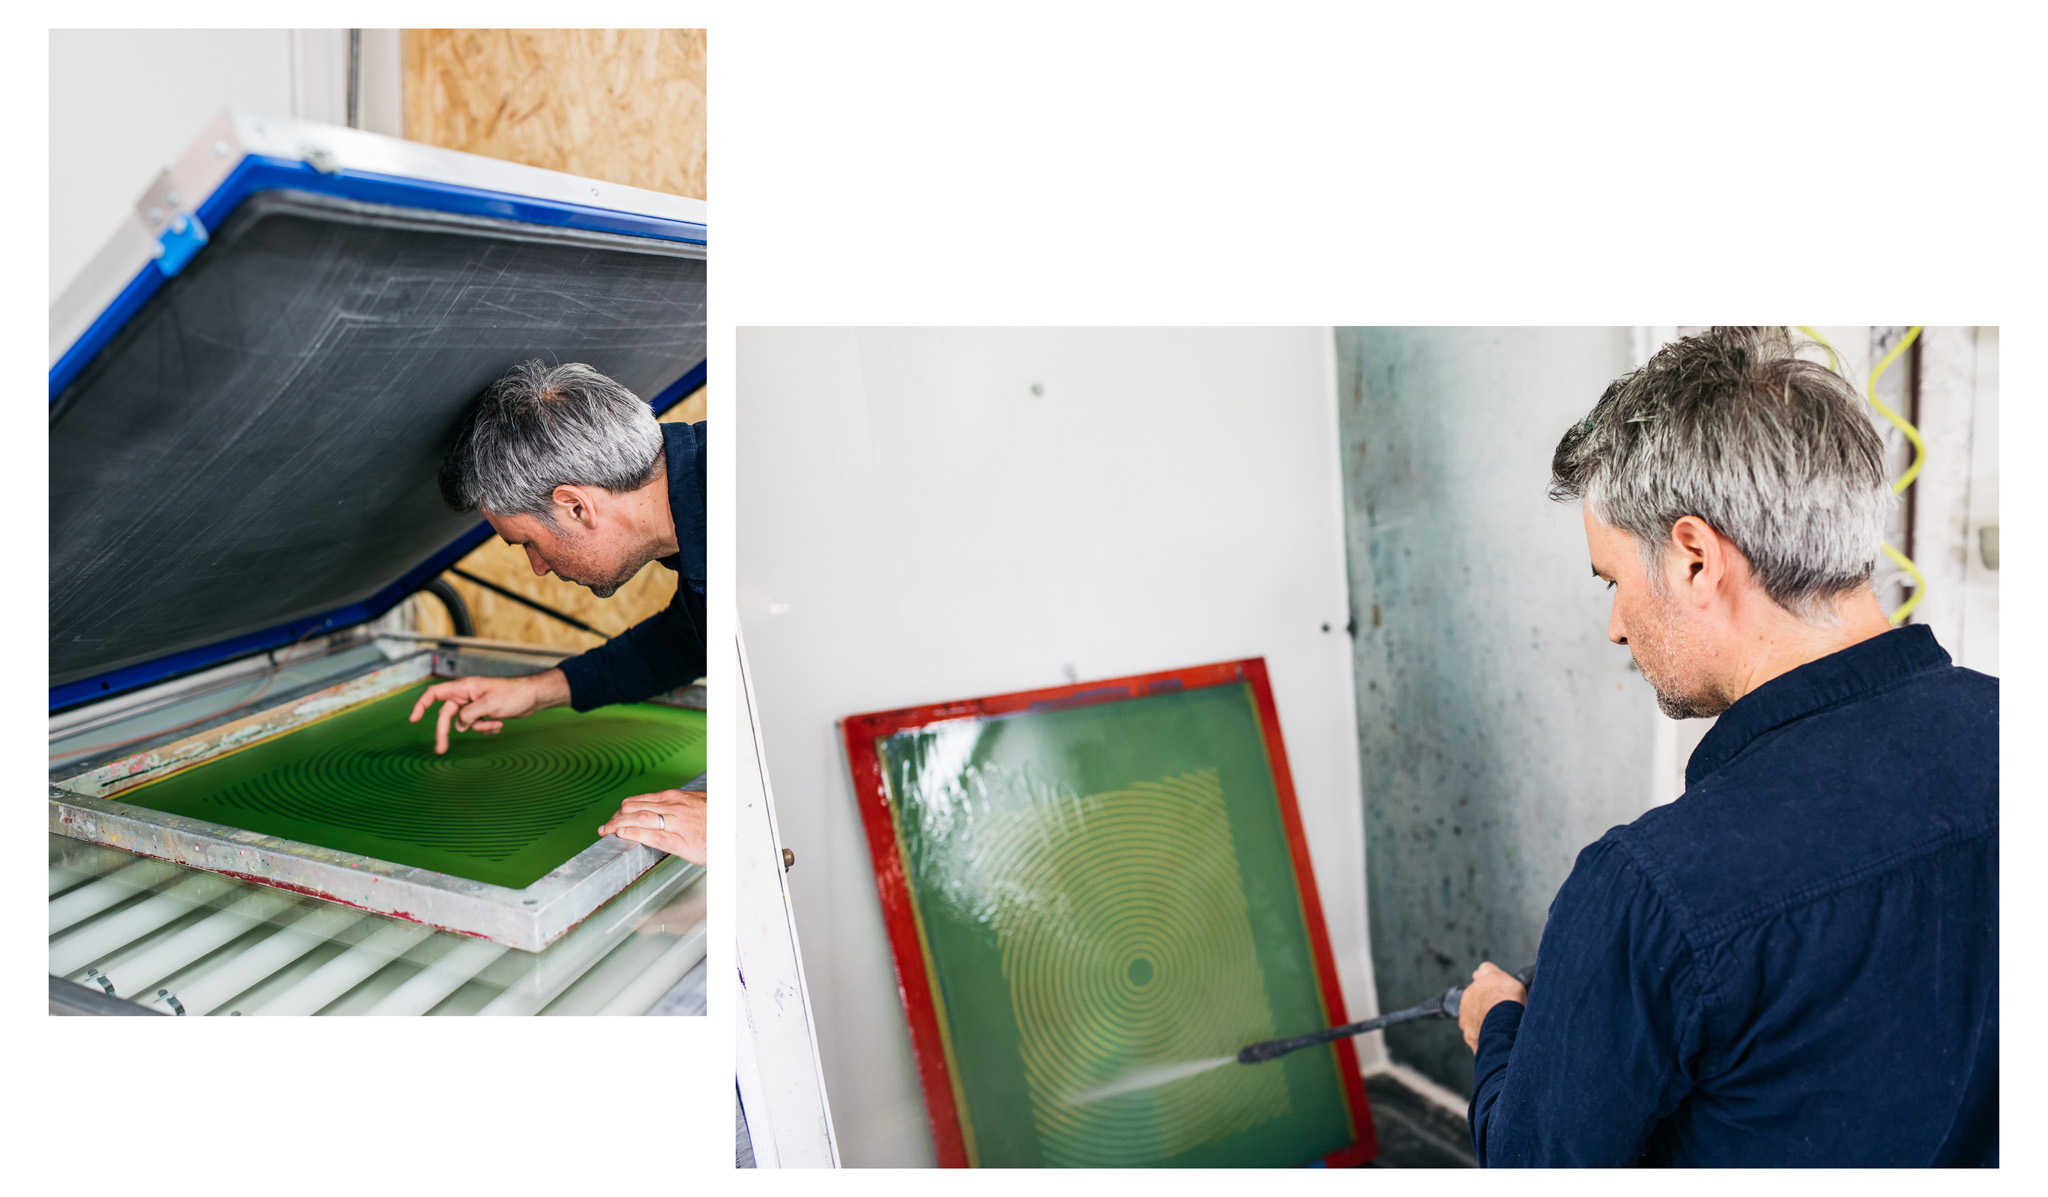 Studio portraits of Gary at The Private Press documenting some of his screen printing processes in his Brighton studio